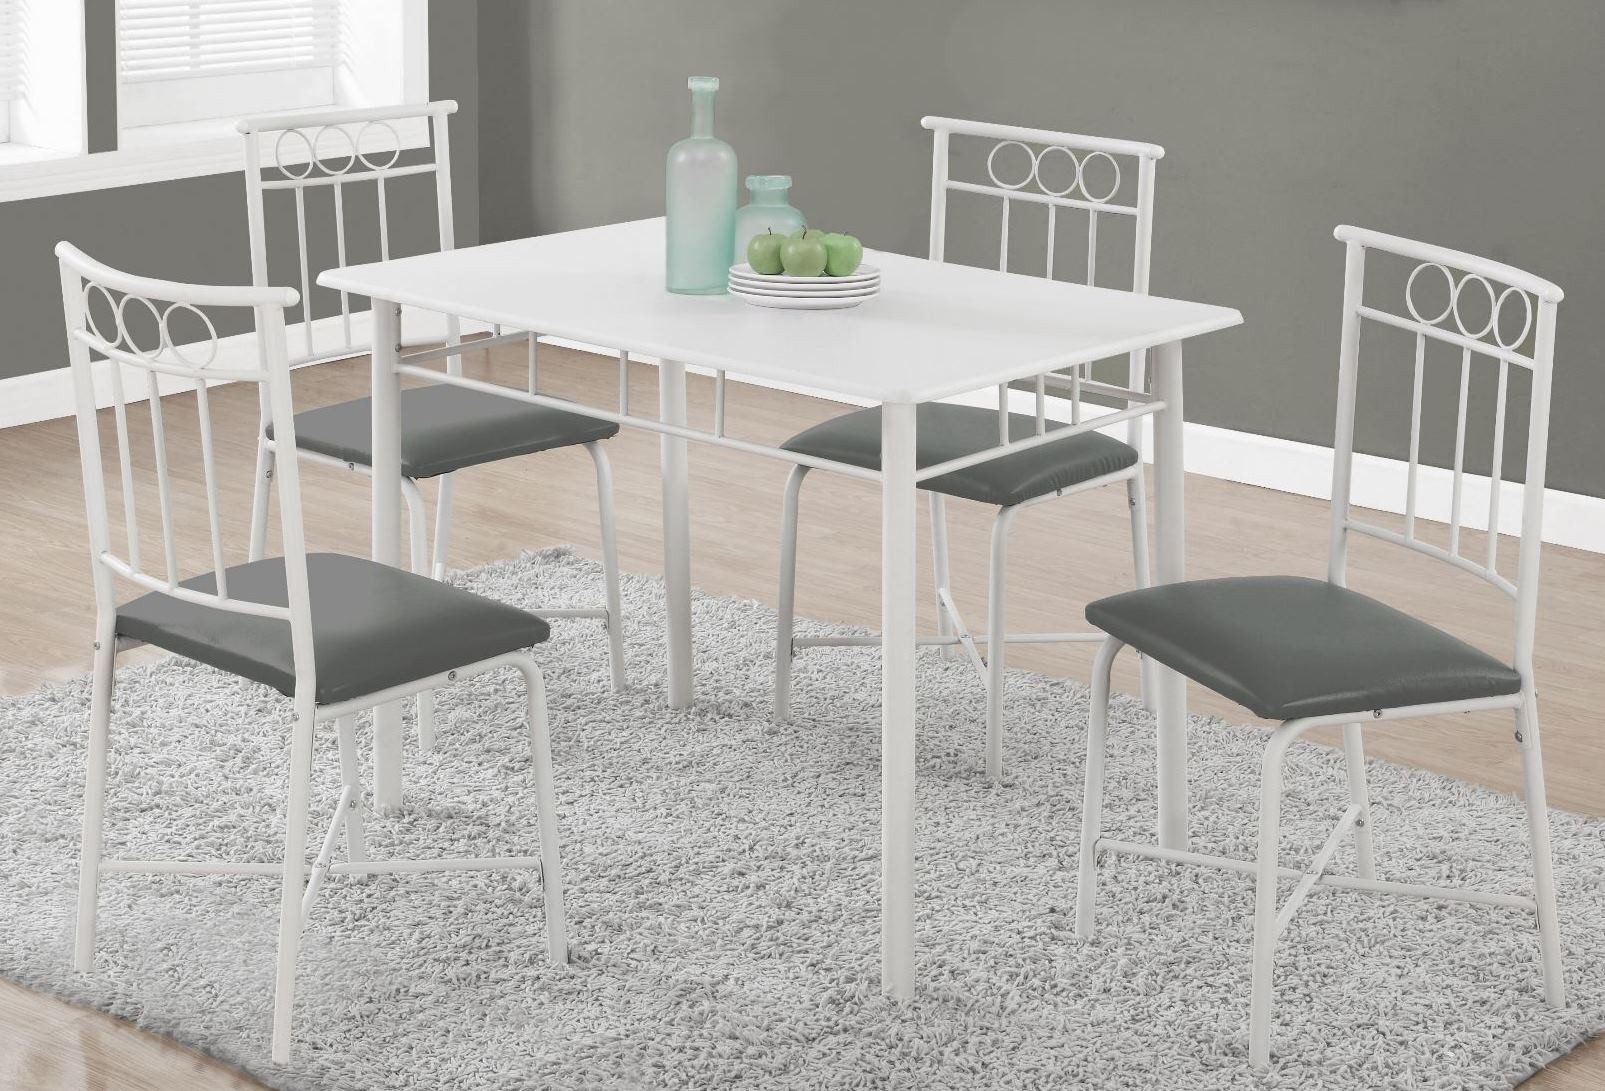 1019 White Metal 5 Piece Dining Room Set 1019 Monarch